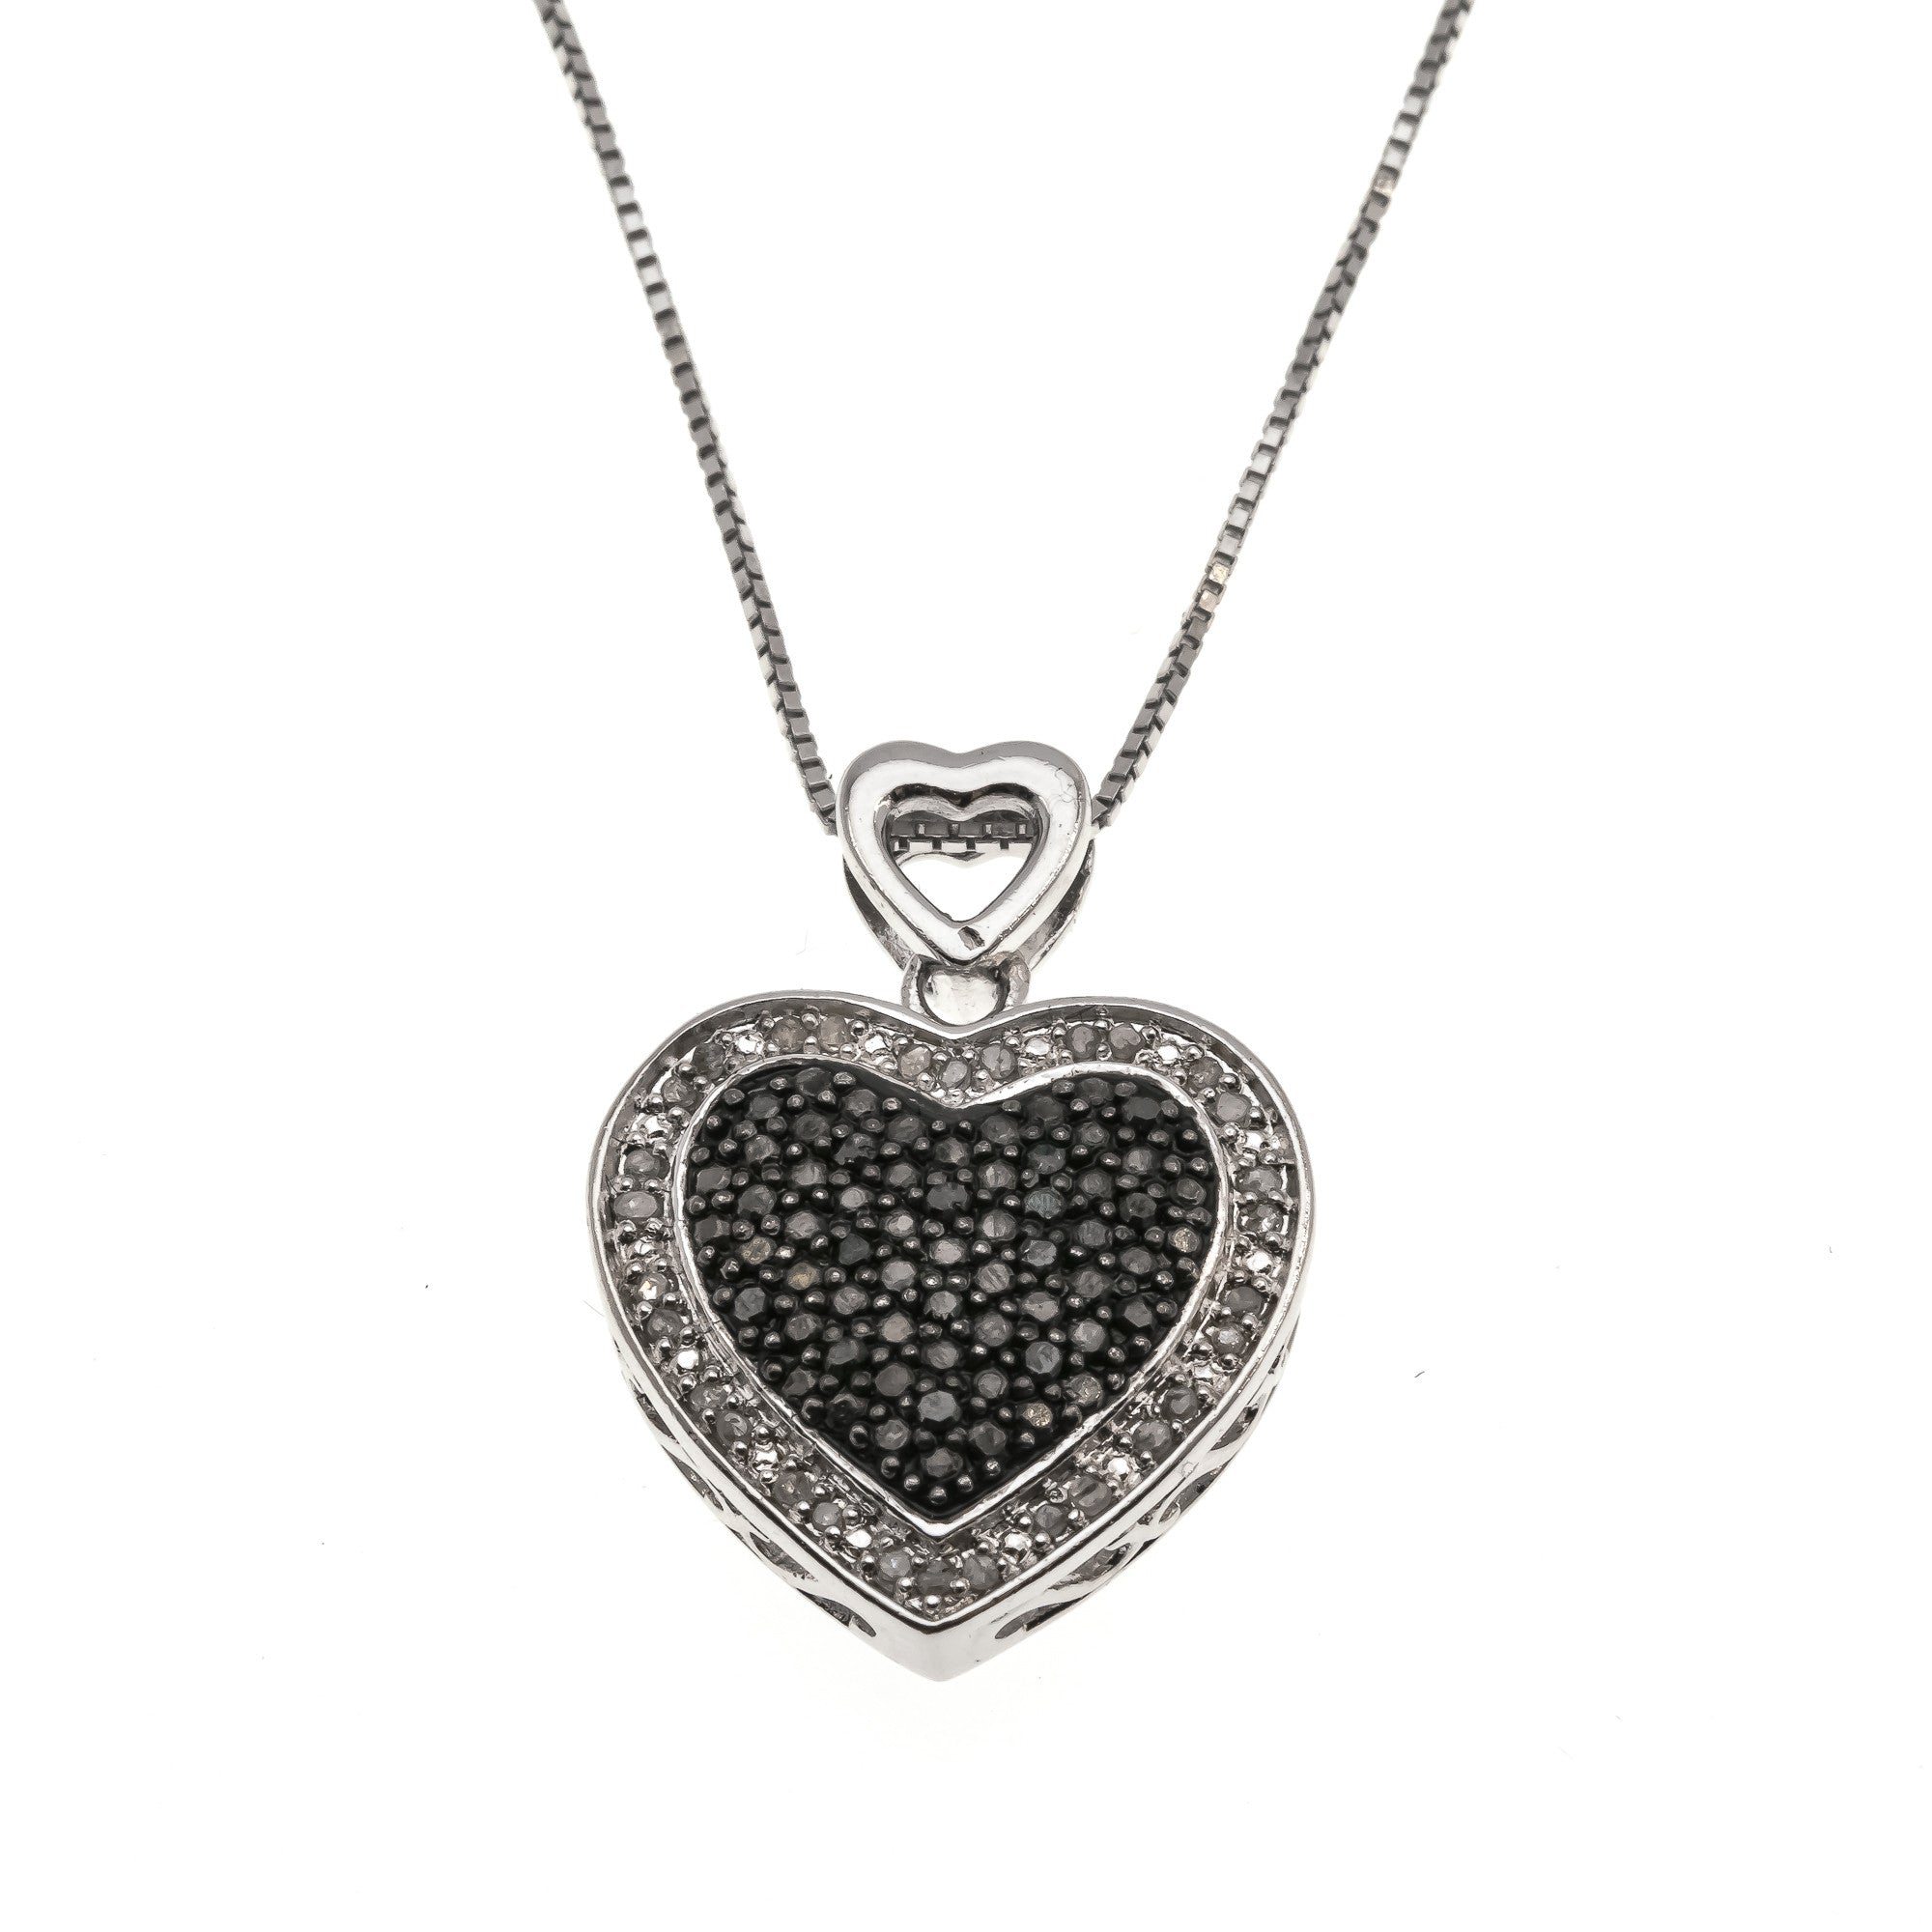 Celestial Valentine - Estate Sterling Silver Black & White Diamond Heart Pendant (EP028)